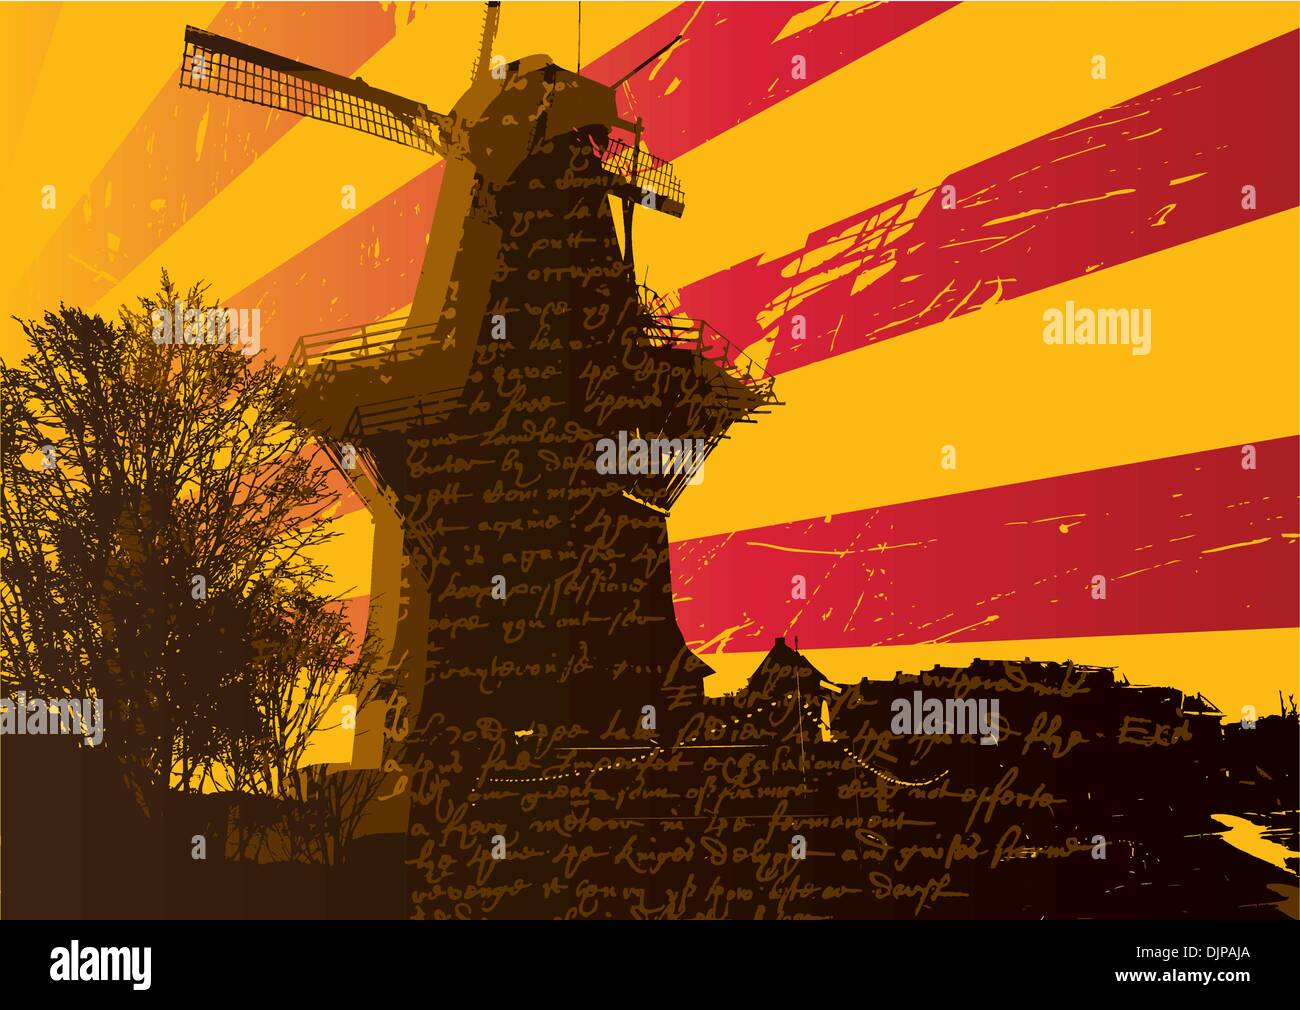 background with windmill - Stock Image